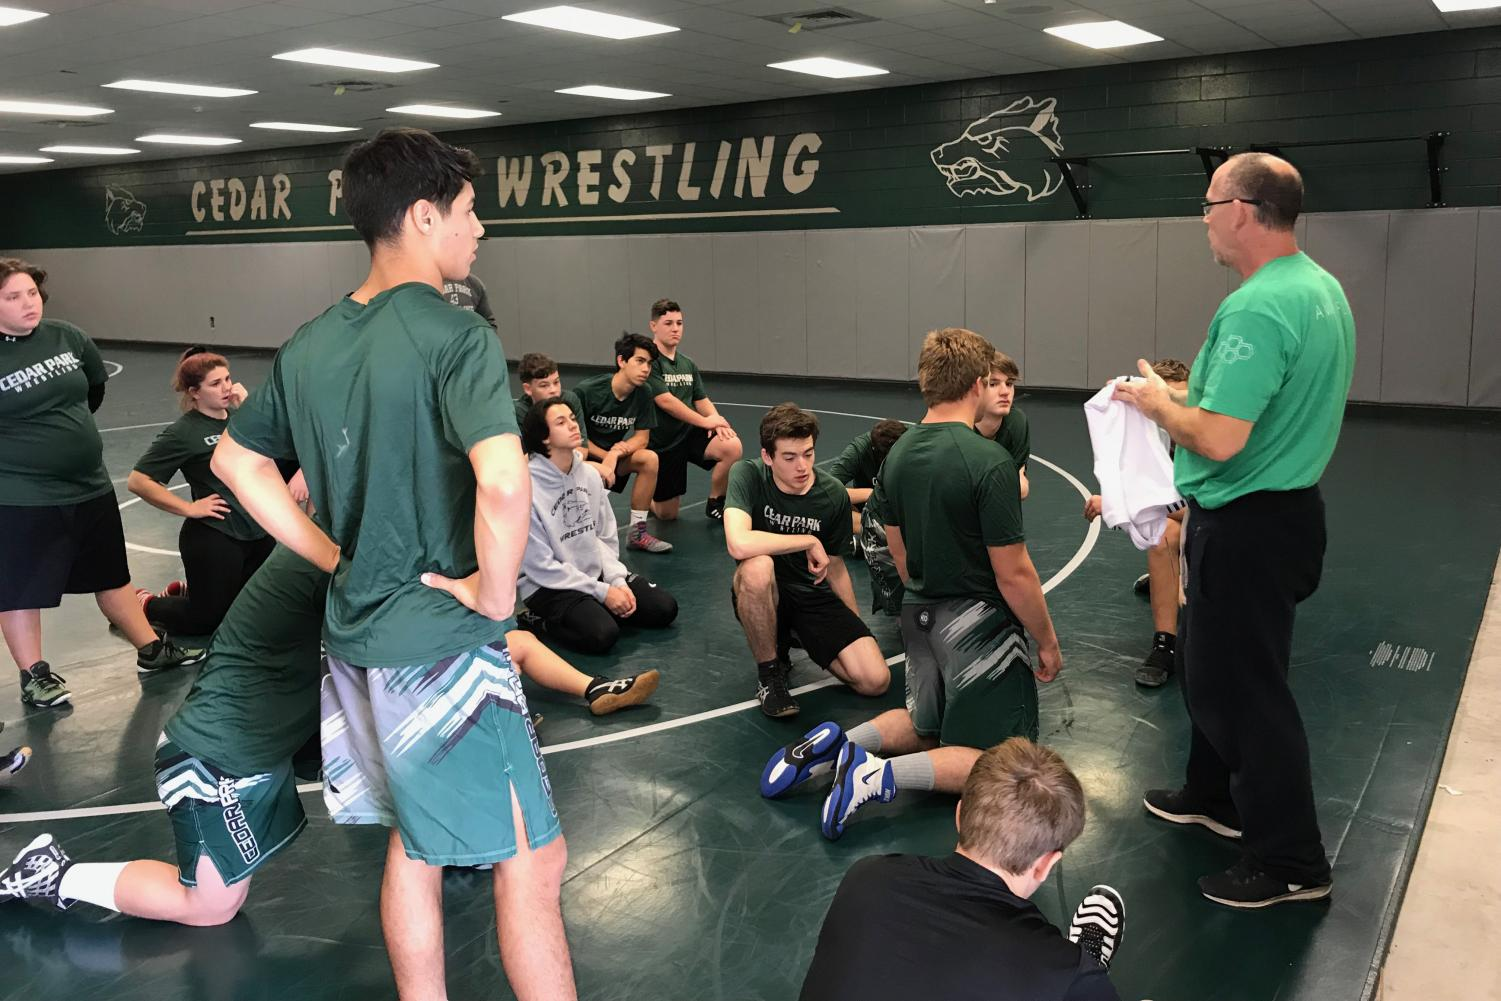 Listening to Coach Peterson, the wrestlers try to absorb all information given to them.